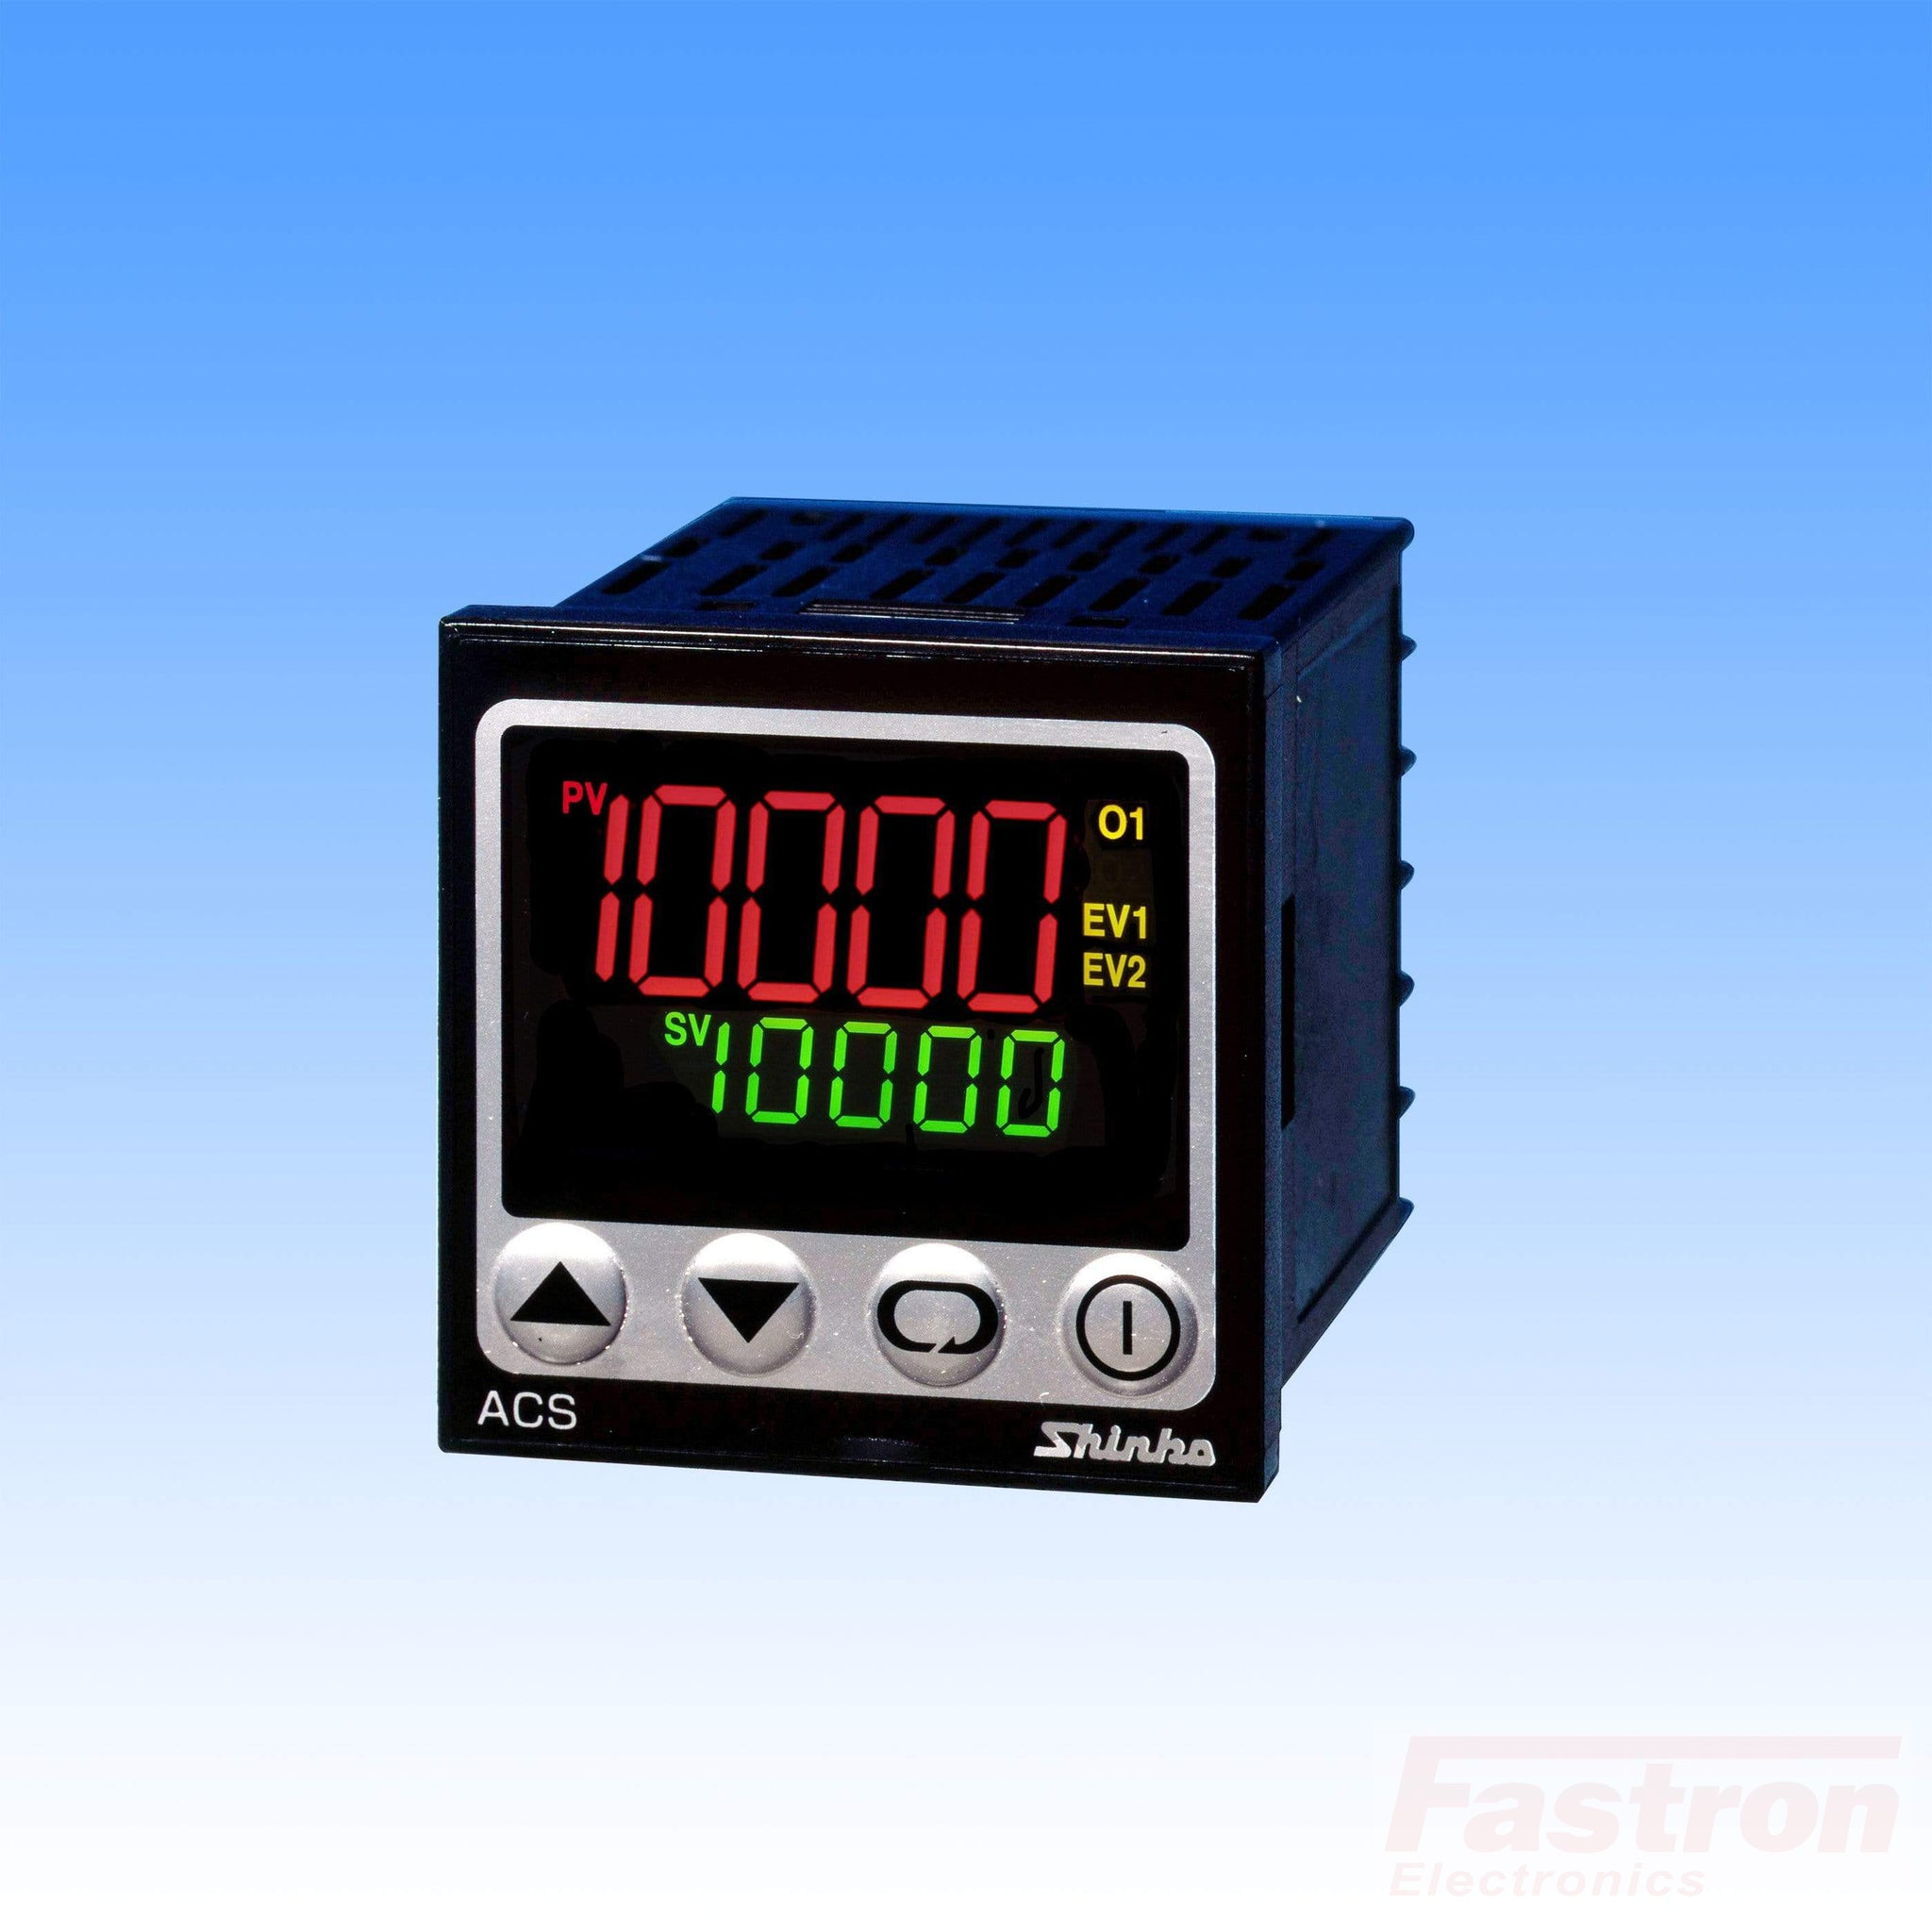 ACS13AS/M1-A2 Temp Controller, 48x48mm, 24VAC/DC, Relay output, 2nd Alarm